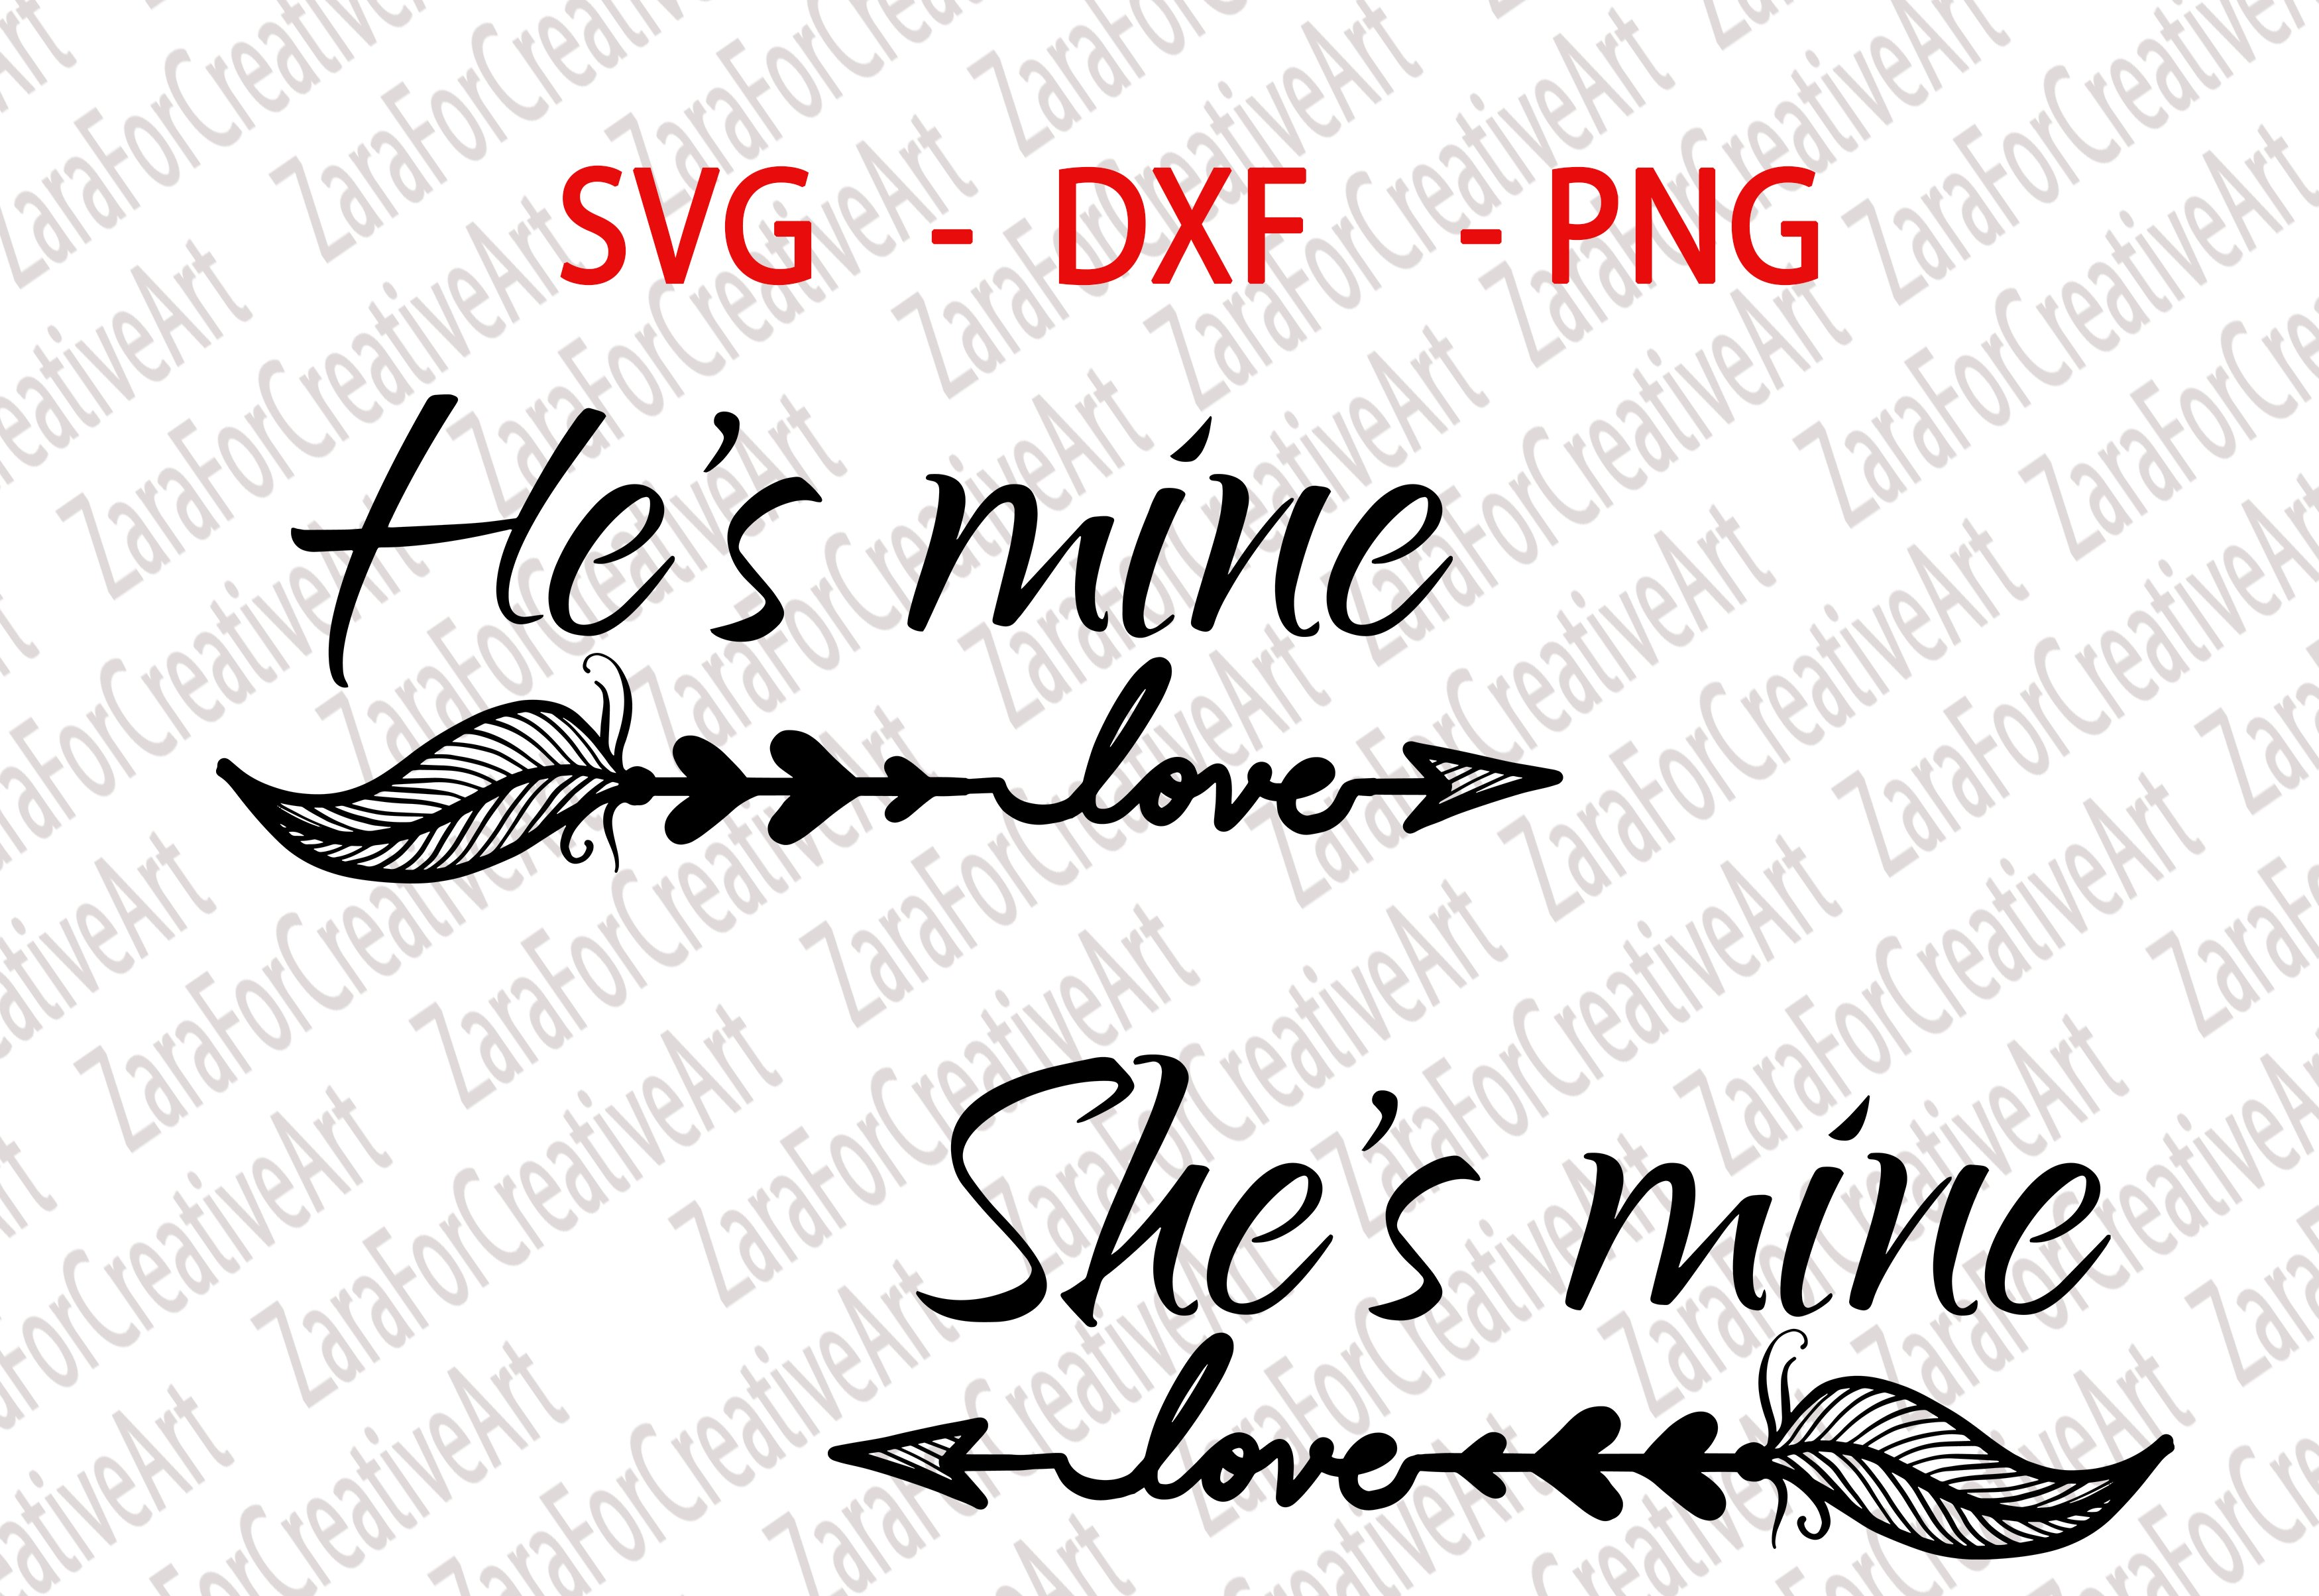 He S Mine She S Mine Svg Dxf Png Cutting Files Cricut Silhouette Cameo Die Cut Love Couple Matching Wifey Hubby Love Kiss Miss U 94979 Svgs Design Bundles